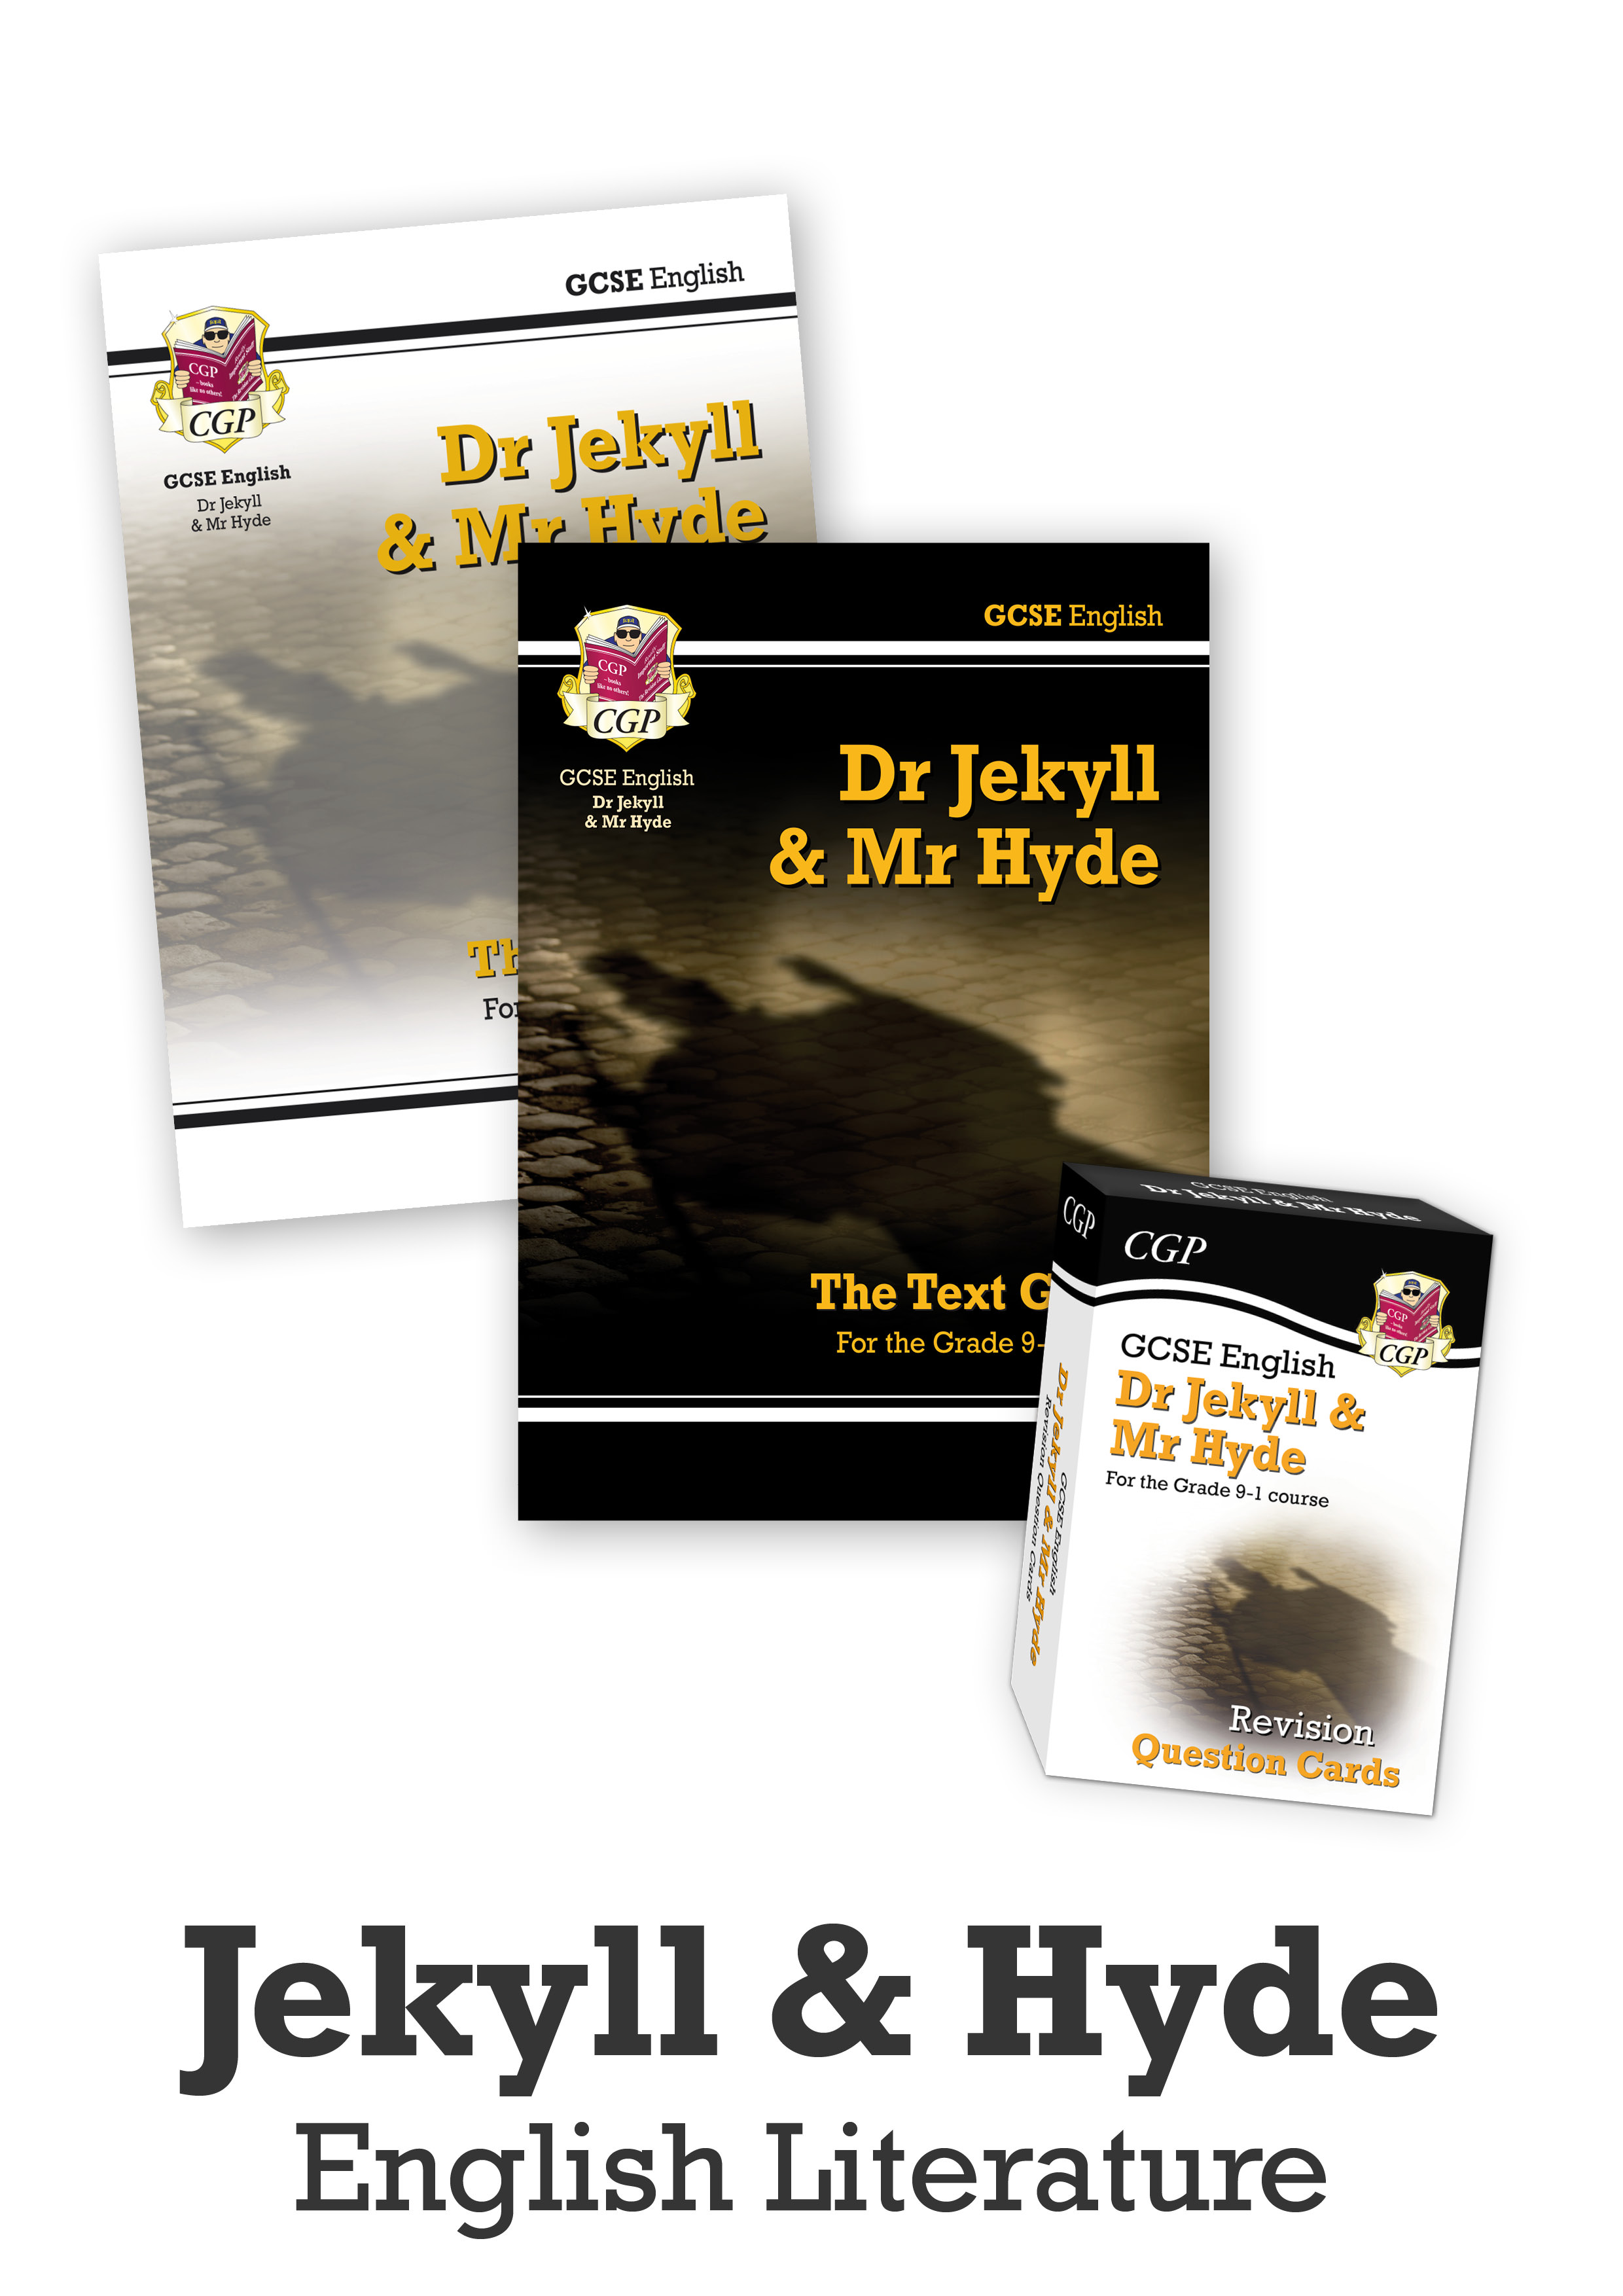 ETJHCUB41 - GCSE Catch-Up Revision Essentials Bundle: English Literature - Jekyll & Hyde